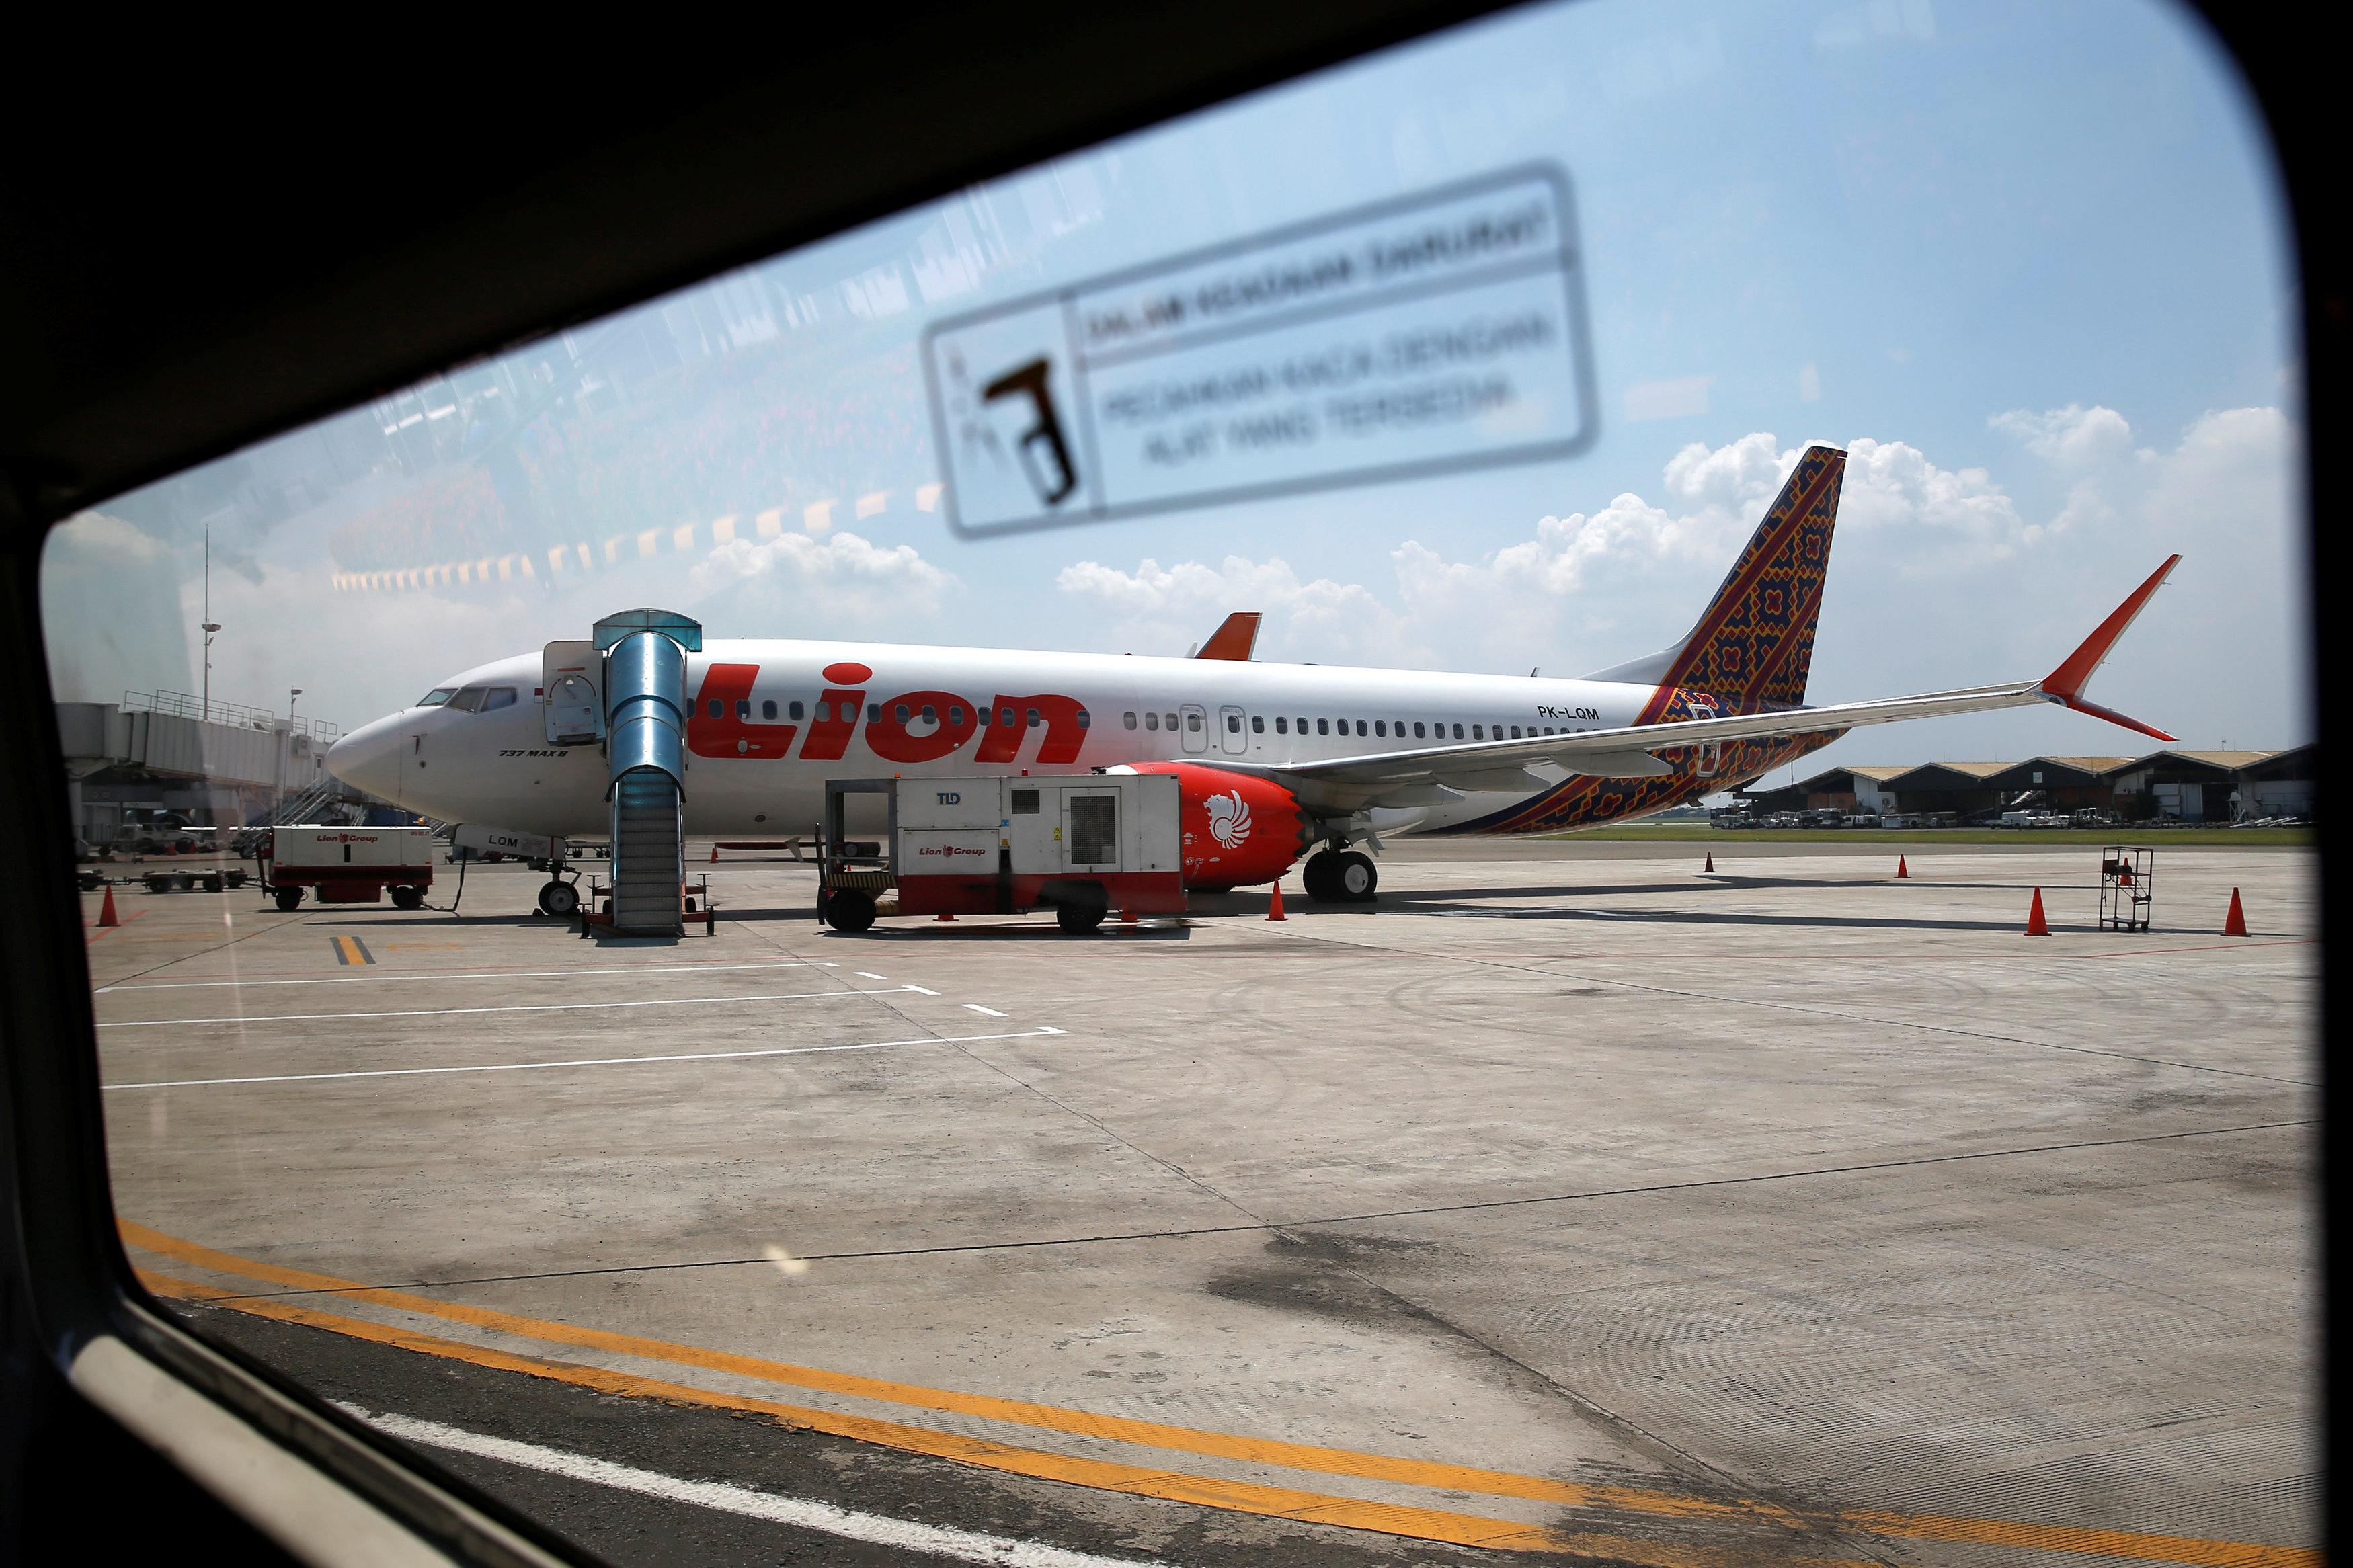 Lion Air Promo Confusion Then Prayer In Cockpit Of Doomed Lion Air Jet The